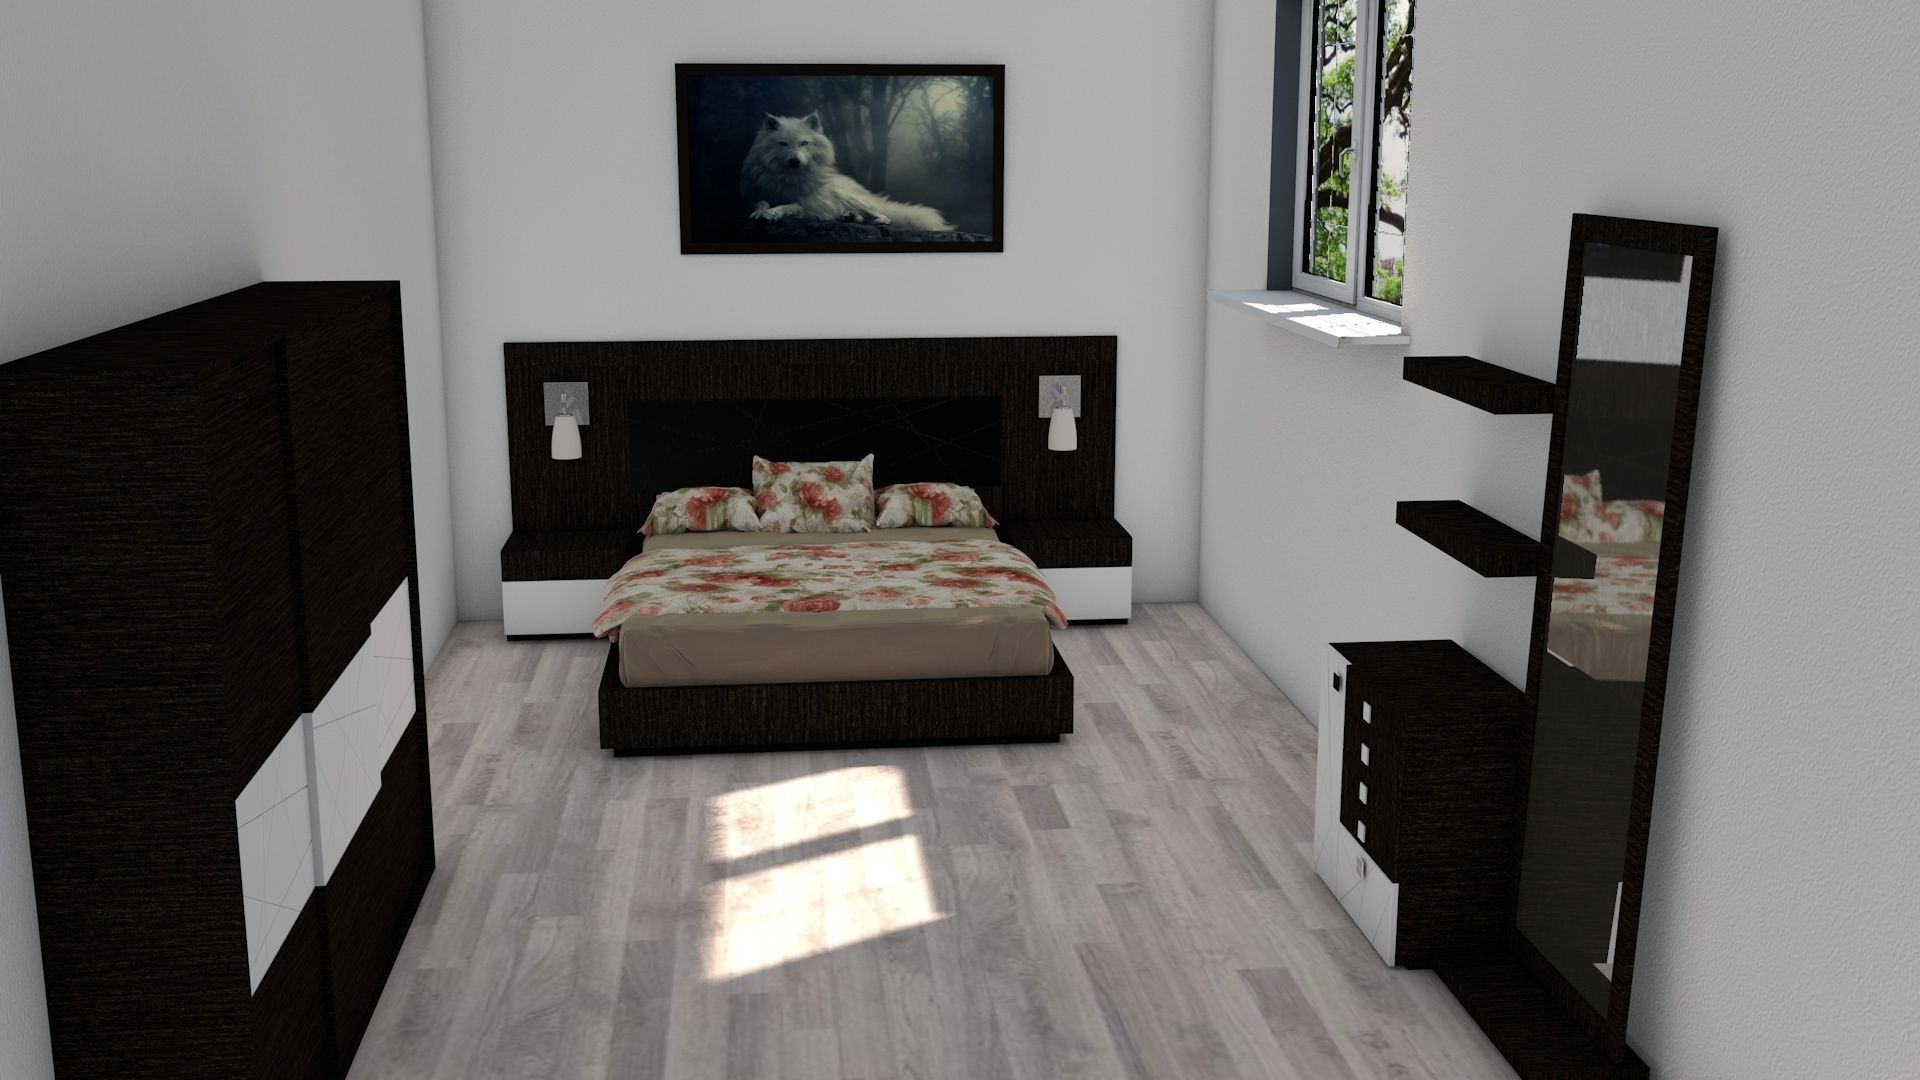 ... Modern House   Interior   Exterior Design 3d Model C4d 7 ... Part 78